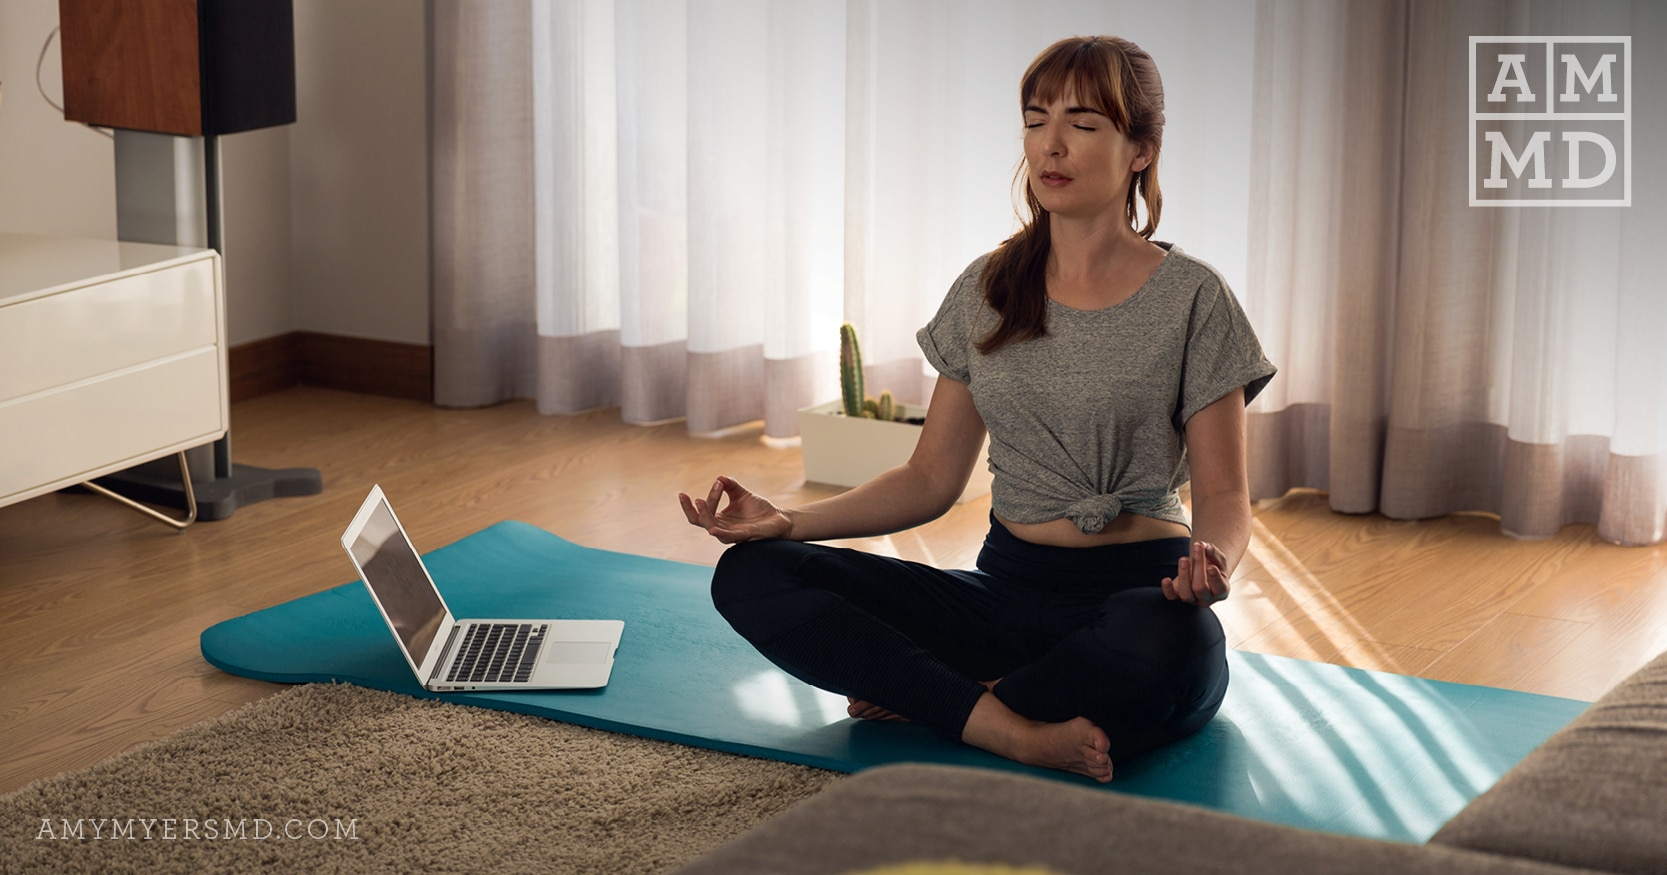 9 Ways to Stay Physically and Mentally Fit While at Home